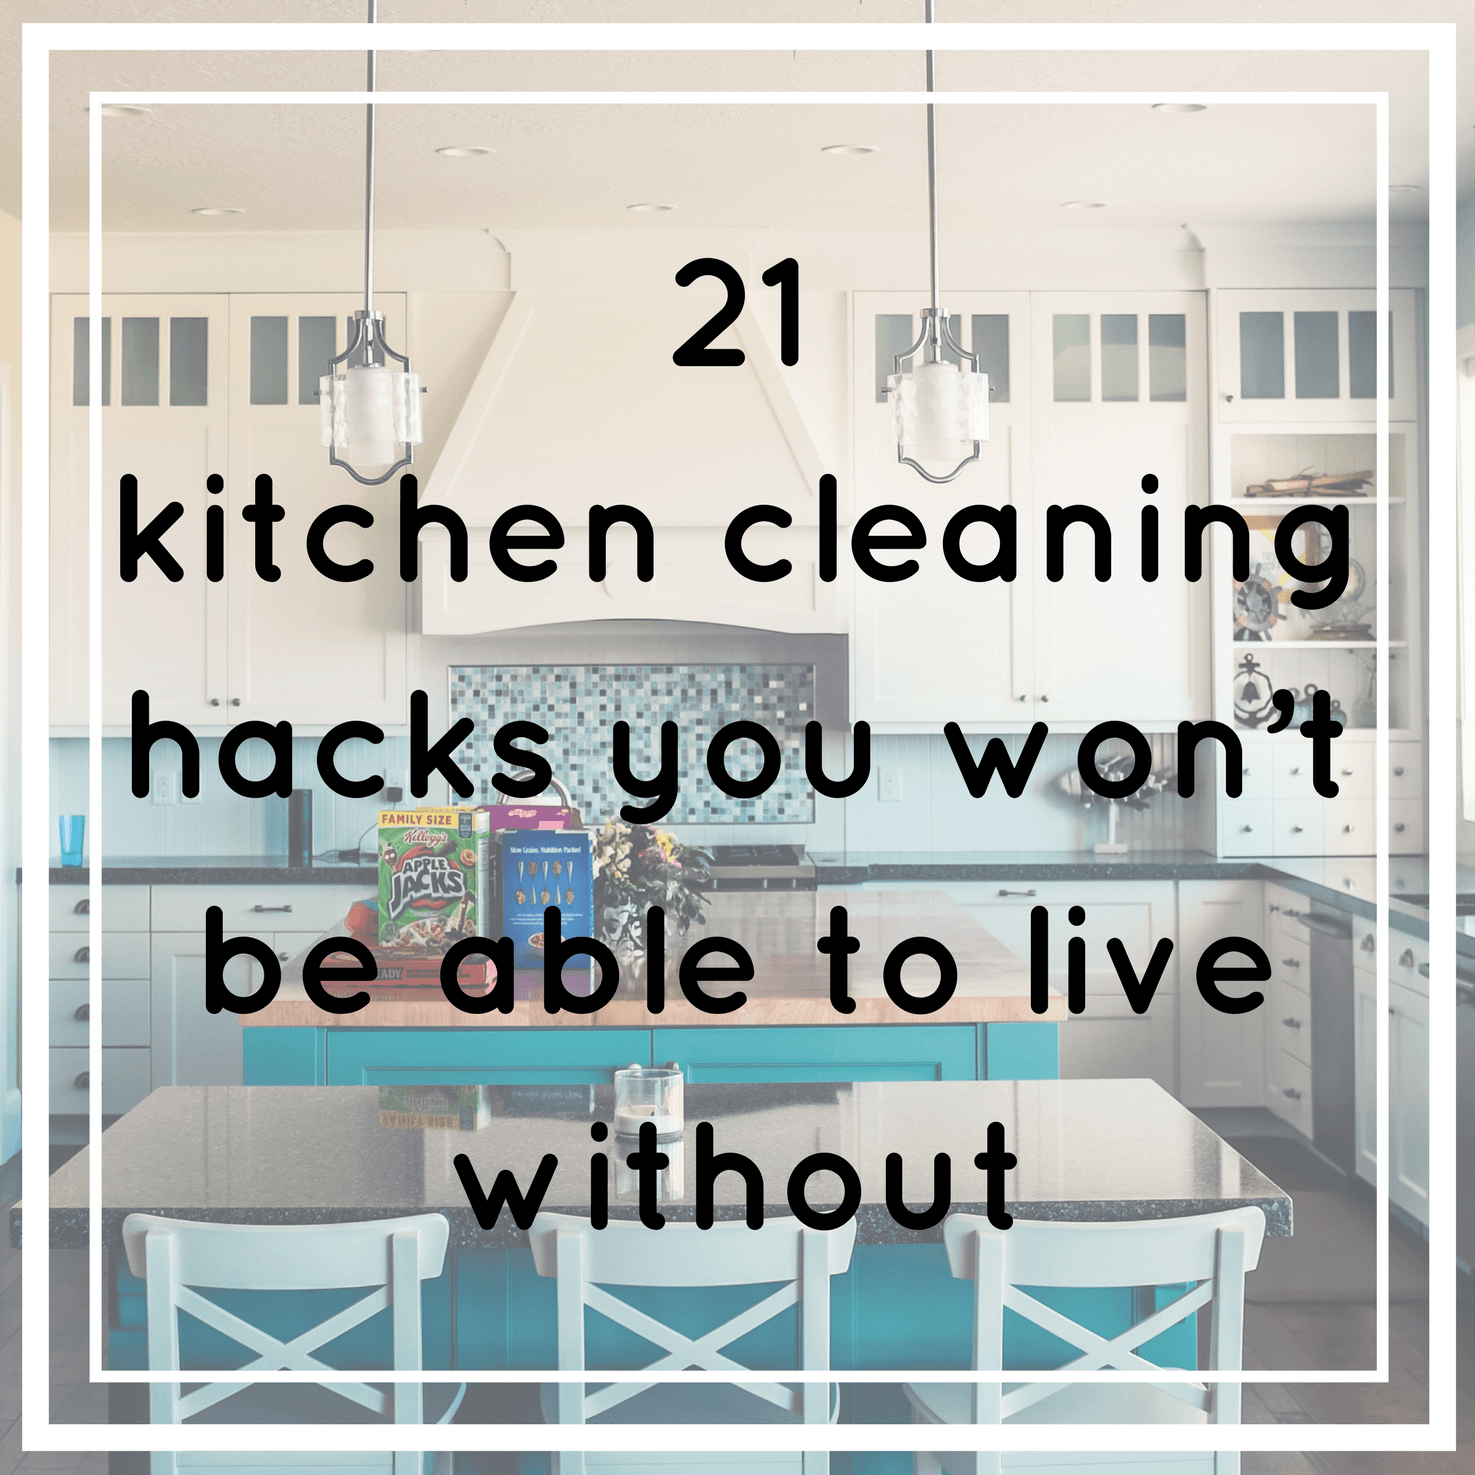 Cleaning the kitchen shouldn't be hard work. You can have your kitchen gleaming in no time and with a minimal amount of effort if you follow these hacks.